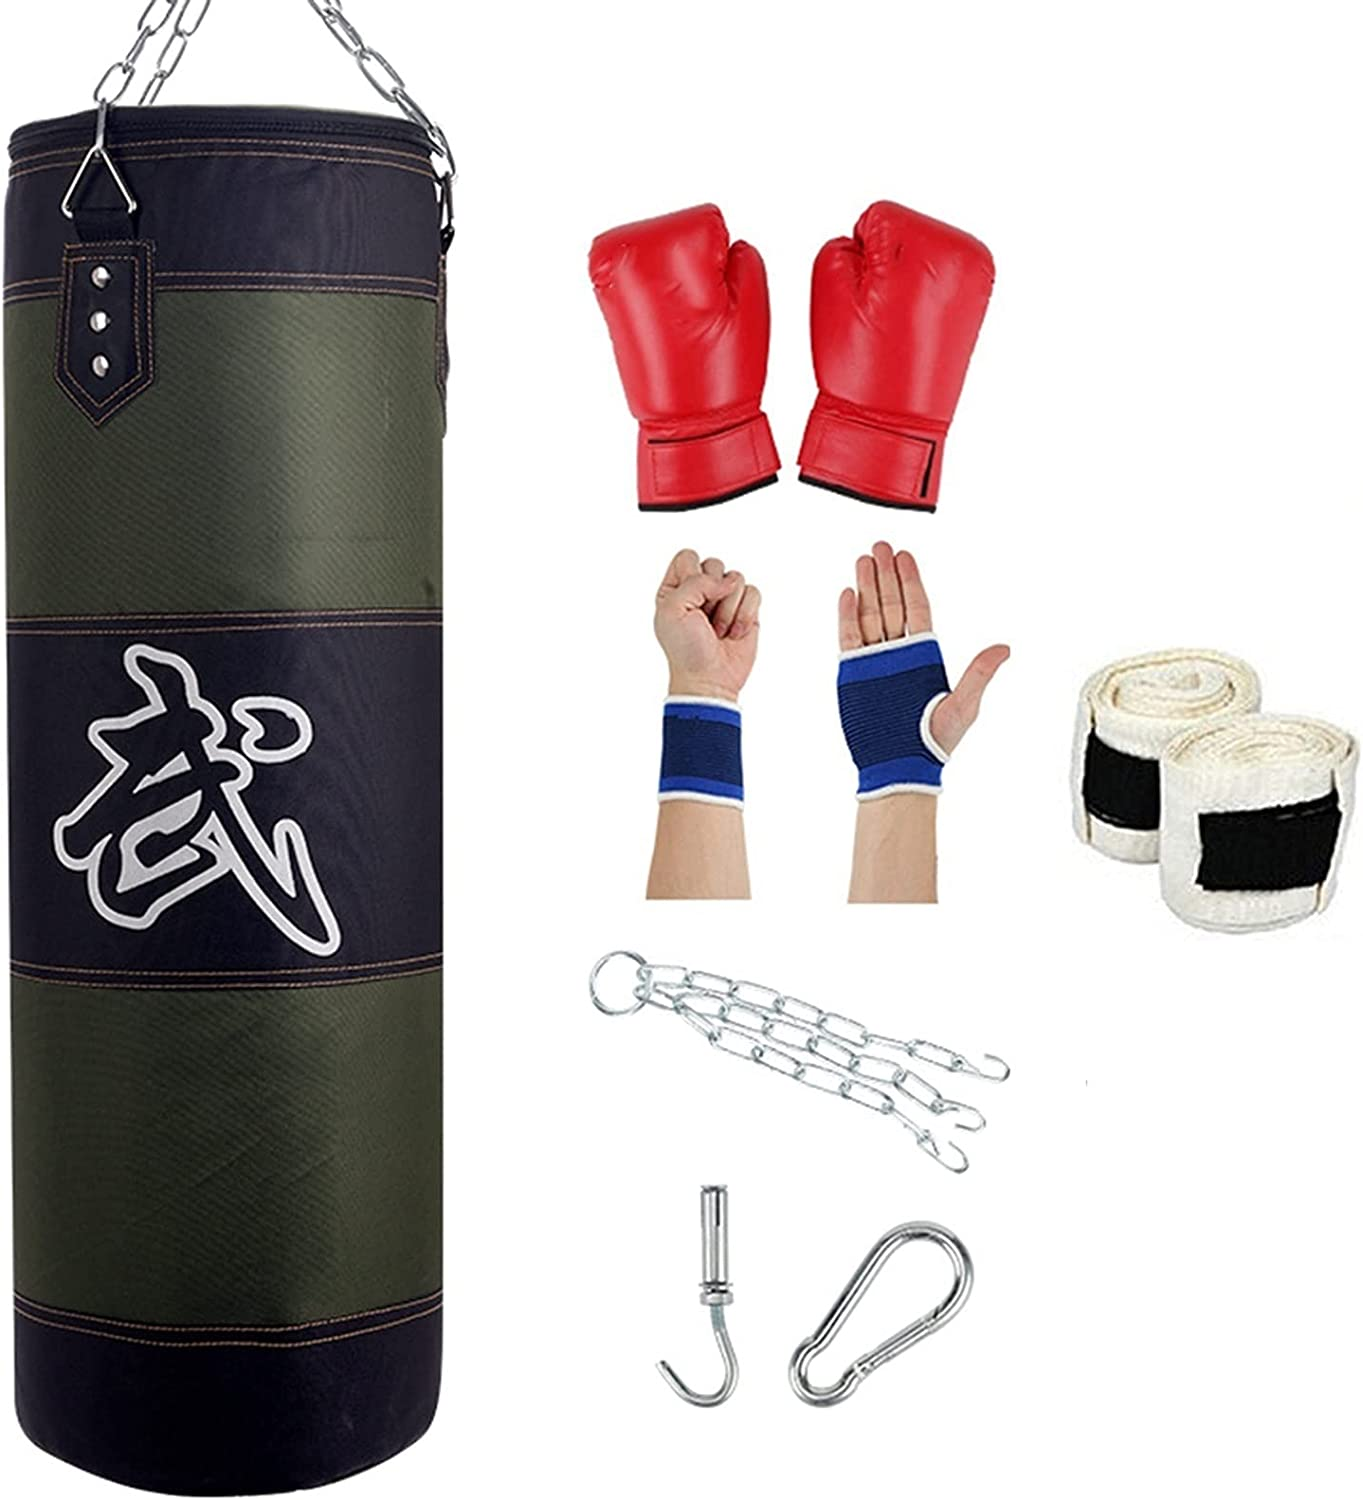 ZWJ Boxing Sets Wall Punch Manufacturer regenerated product Arlington Mall Bag Sandbag Thick High-Grade and Wear